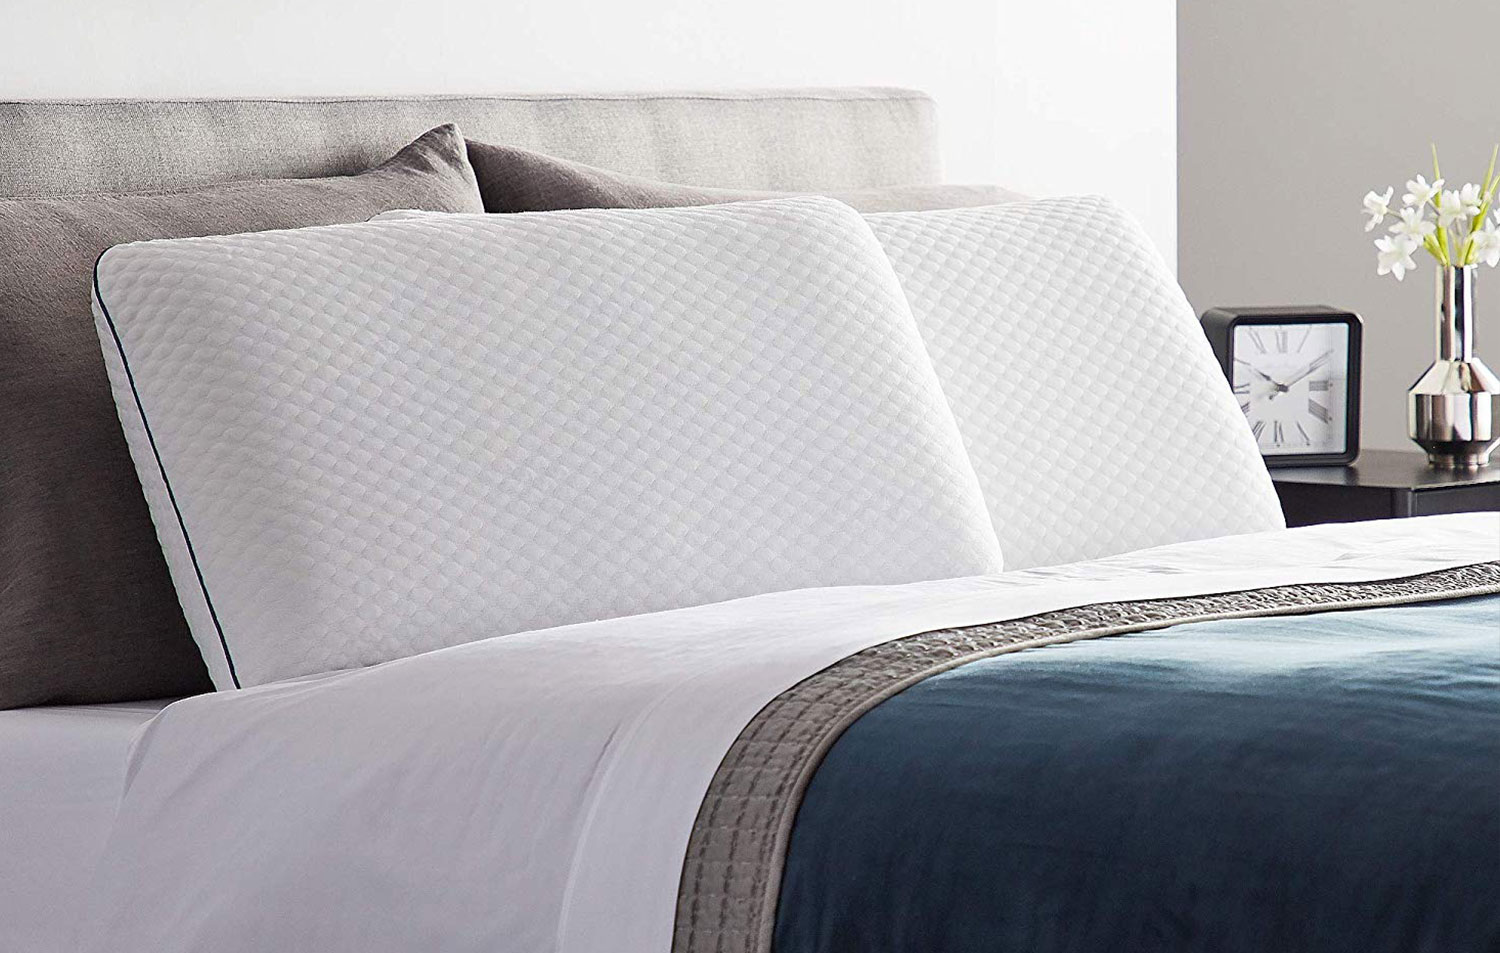 close-up image of two pillows on the bed